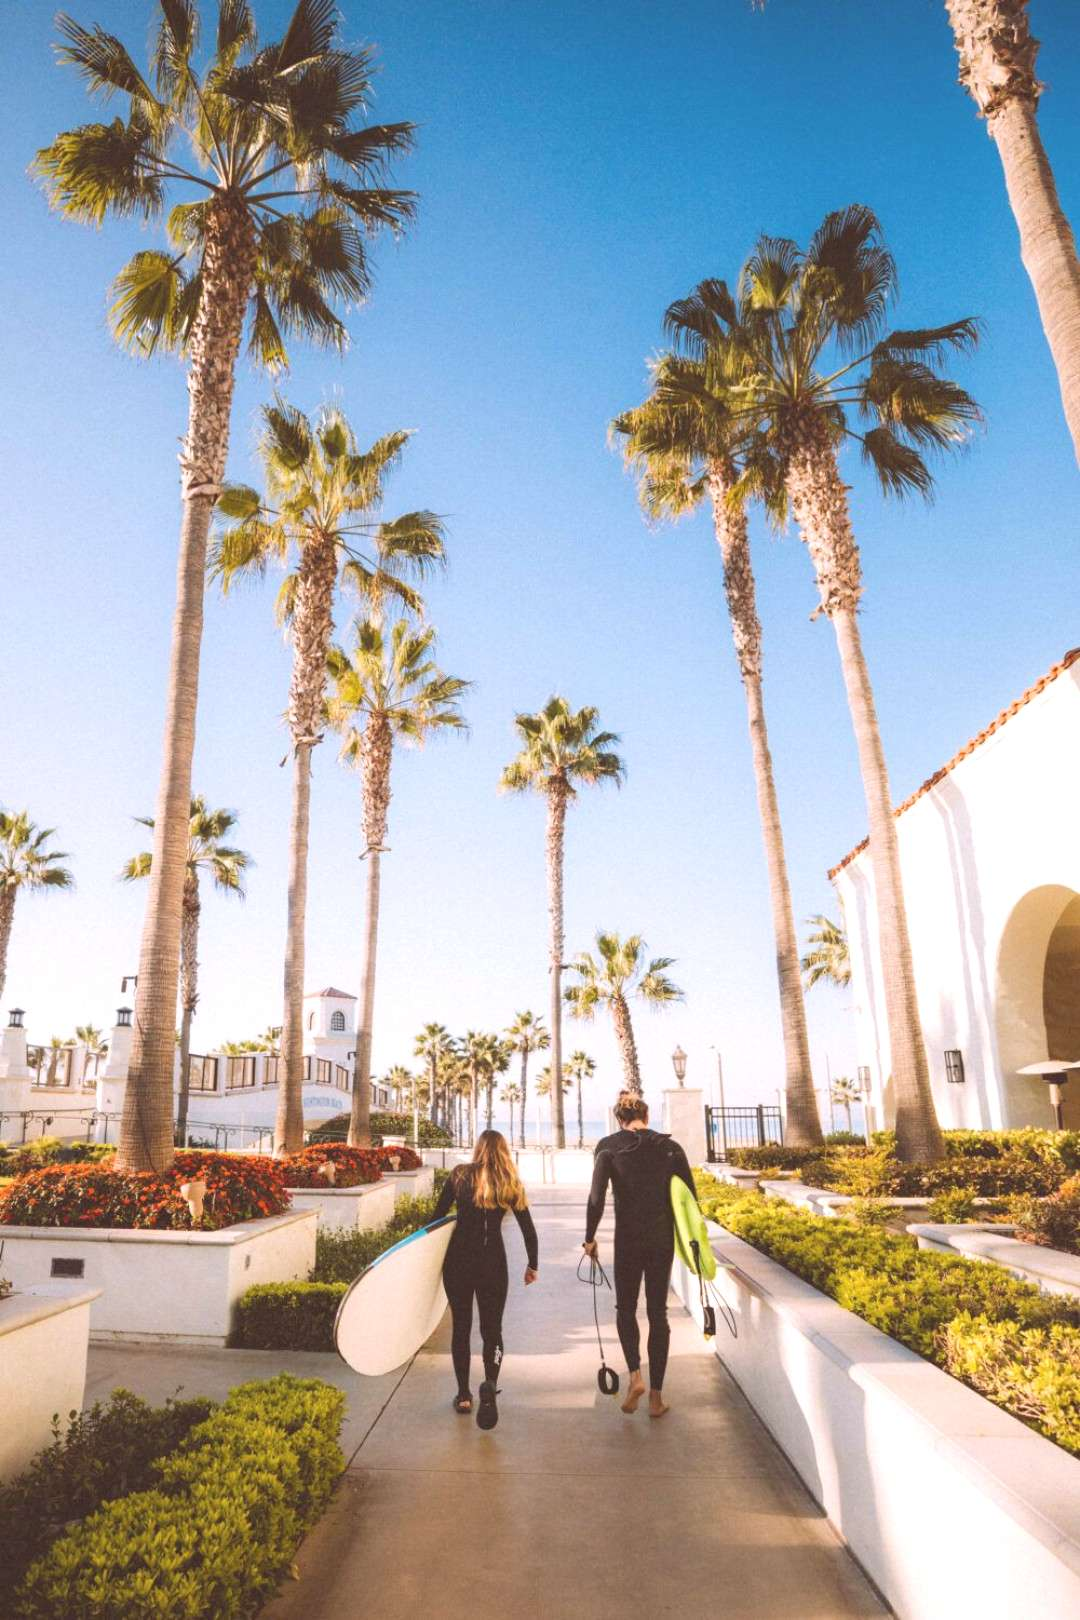 10 Amazing Places In Orange County, CA Looking for awesome things to do in Orange County? Were sha